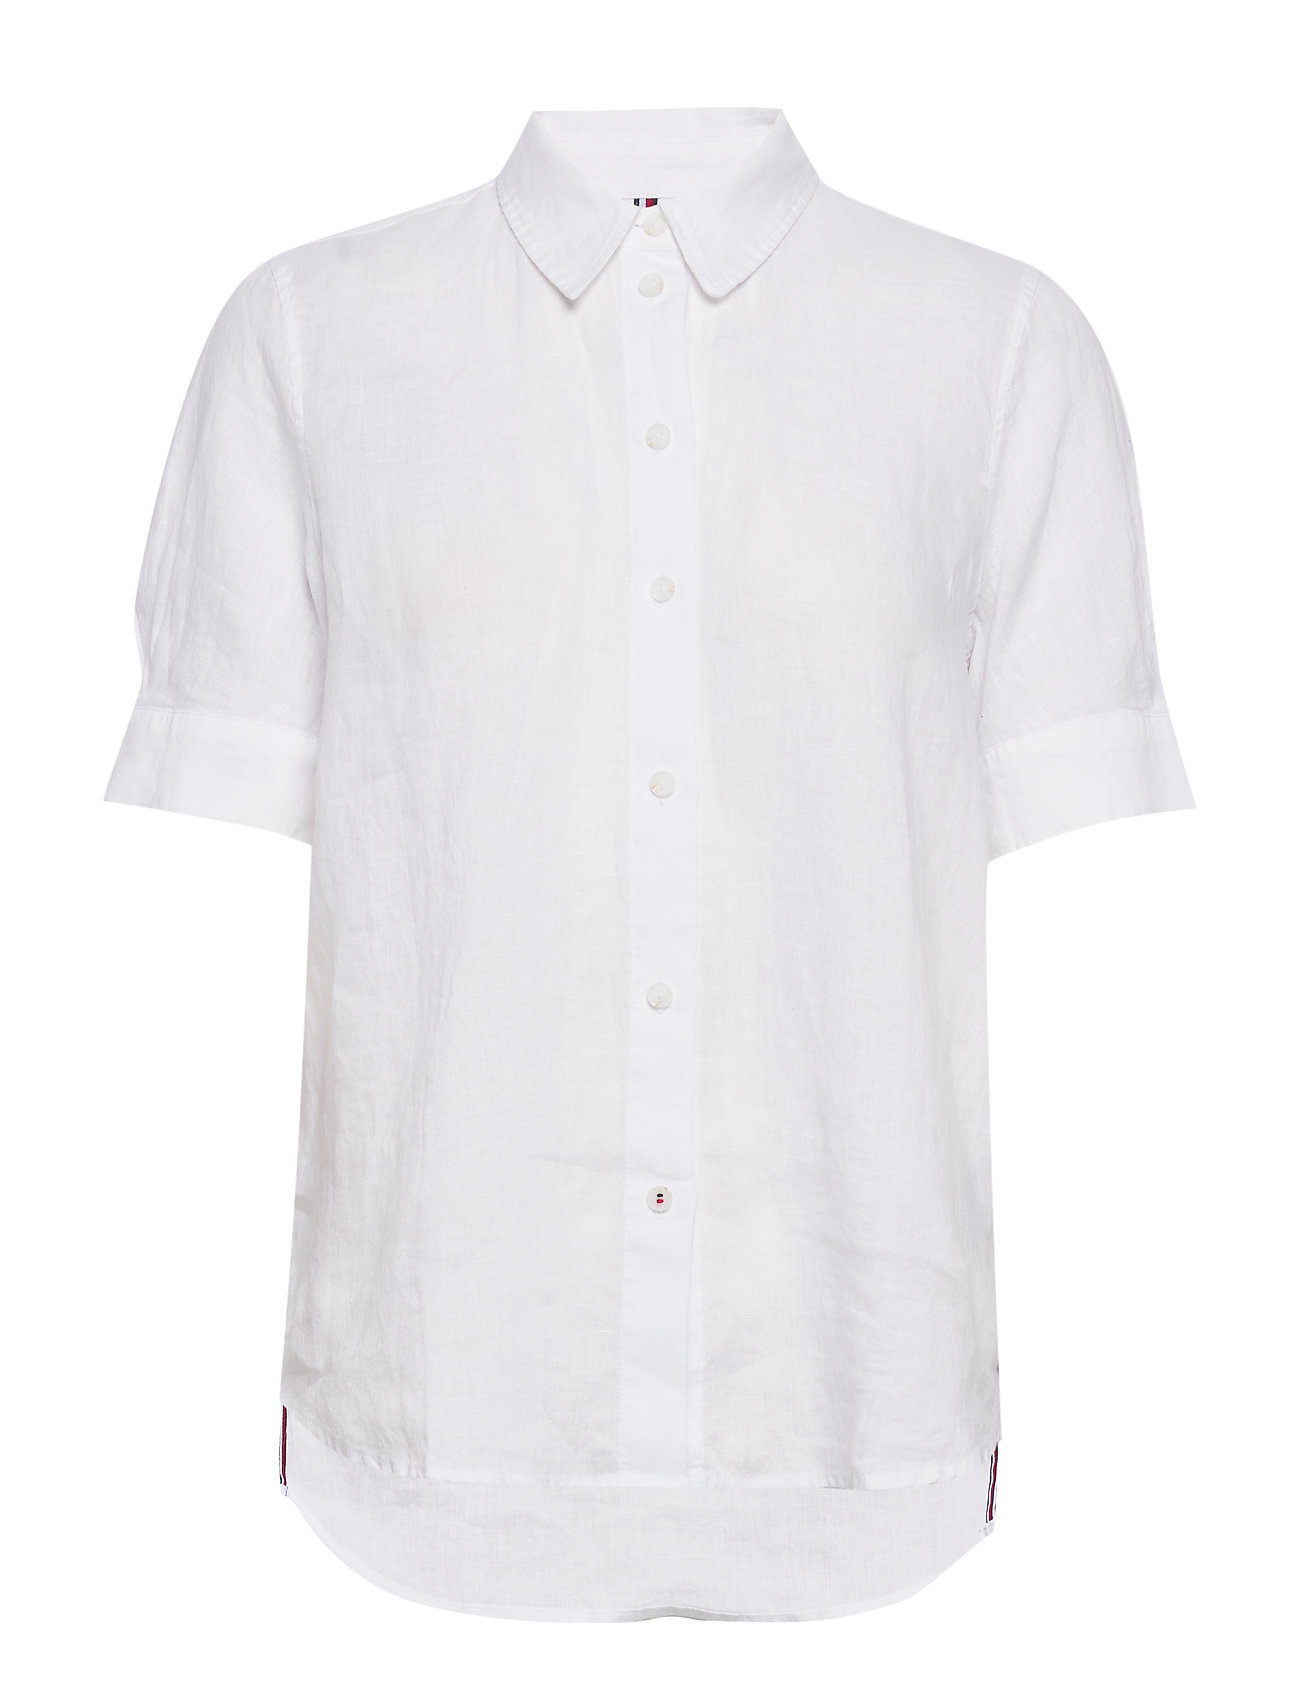 Tommy Hilfiger TH ESSENTIAL PENELOPE SHIRT SS - WHITE